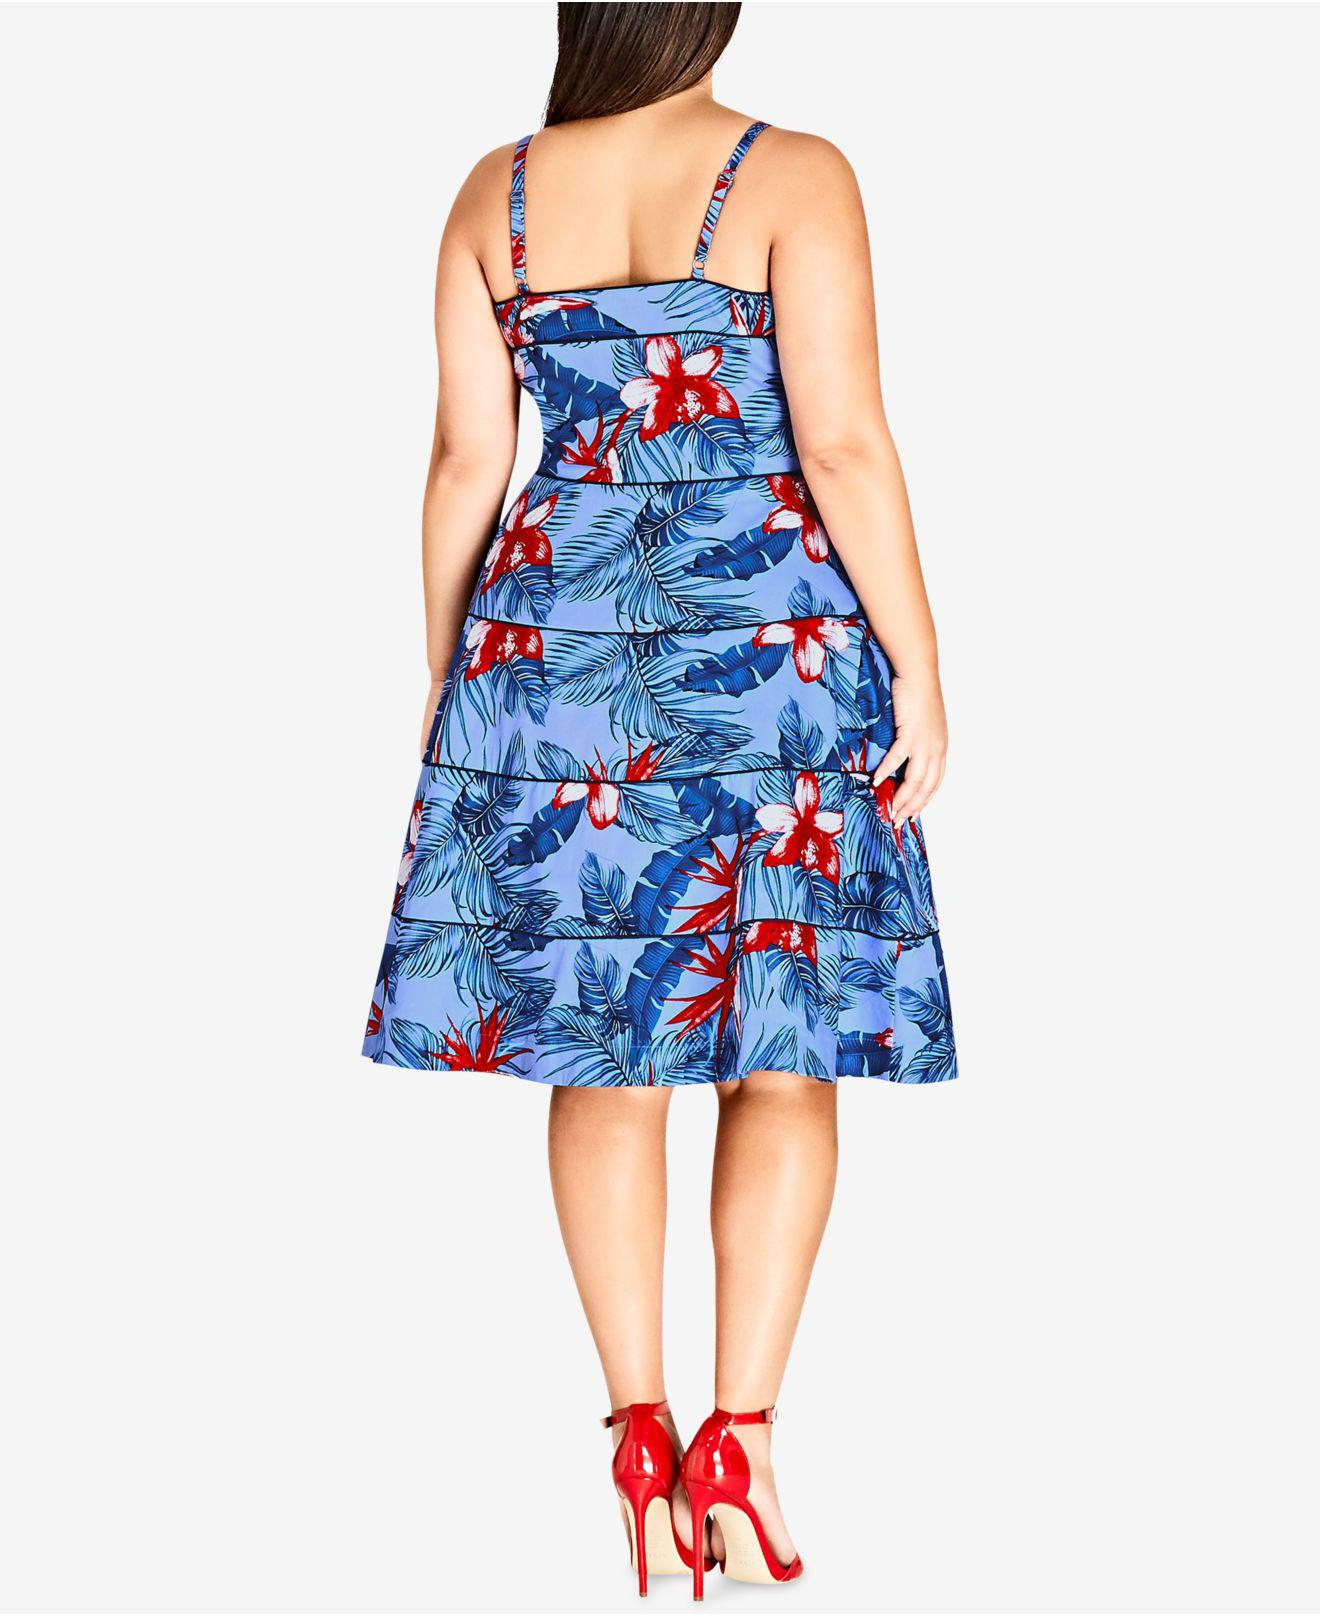 3baeaf5564b3d Lyst - City Chic Trendy Plus Size Tropical-print Fit   Flare Dress in Blue  - Save 50%